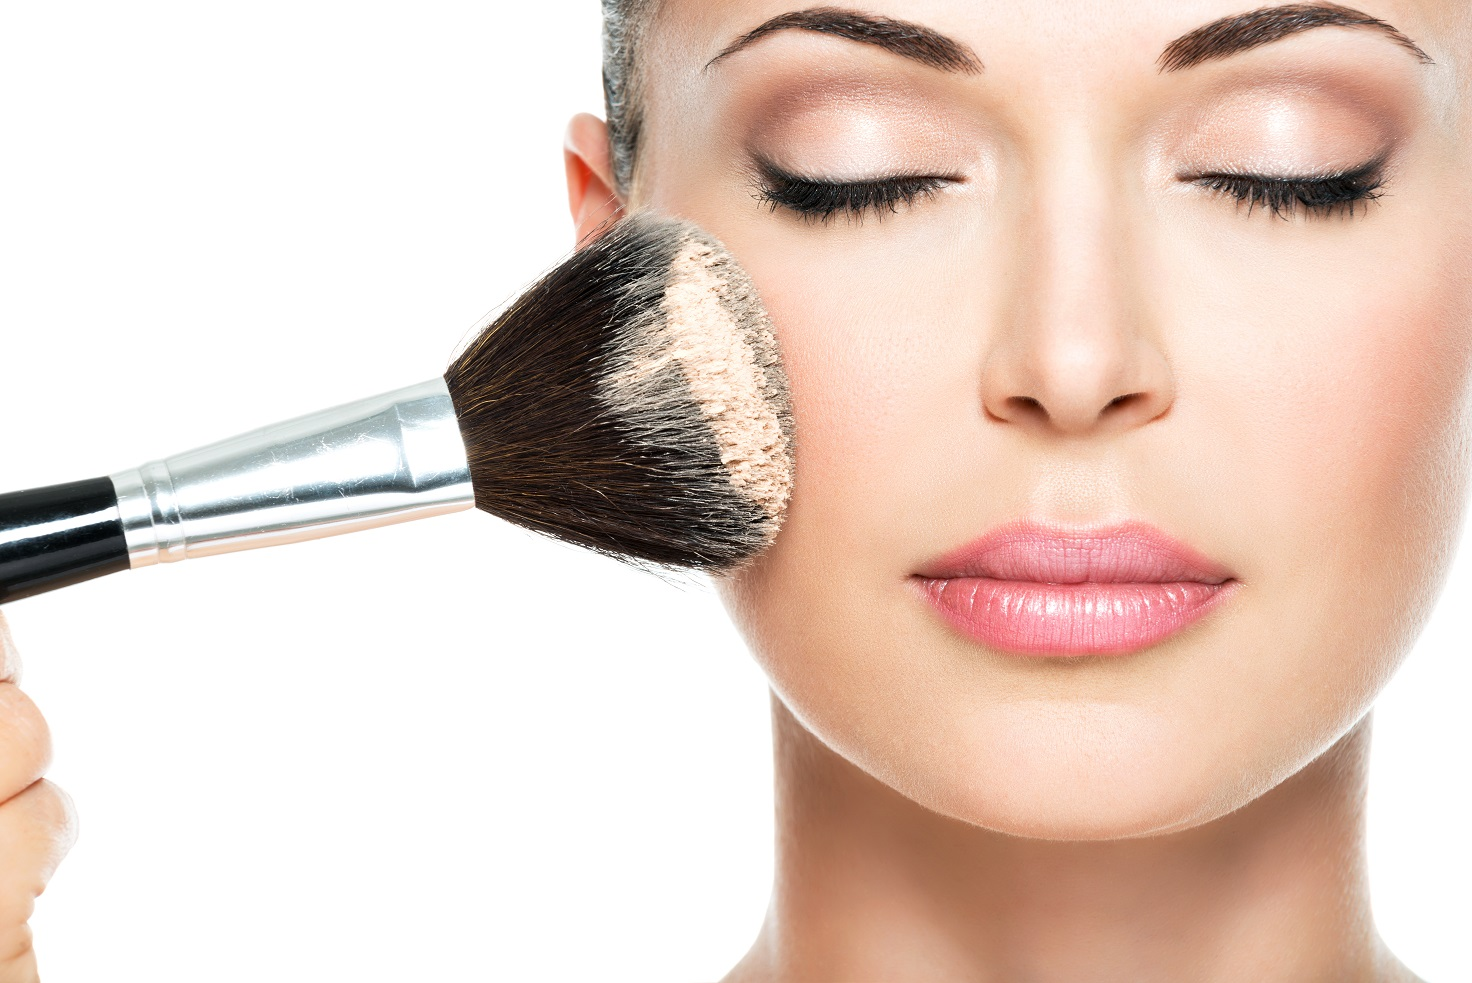 10 Natural Foundations For All Skin - www.topbeauti.com